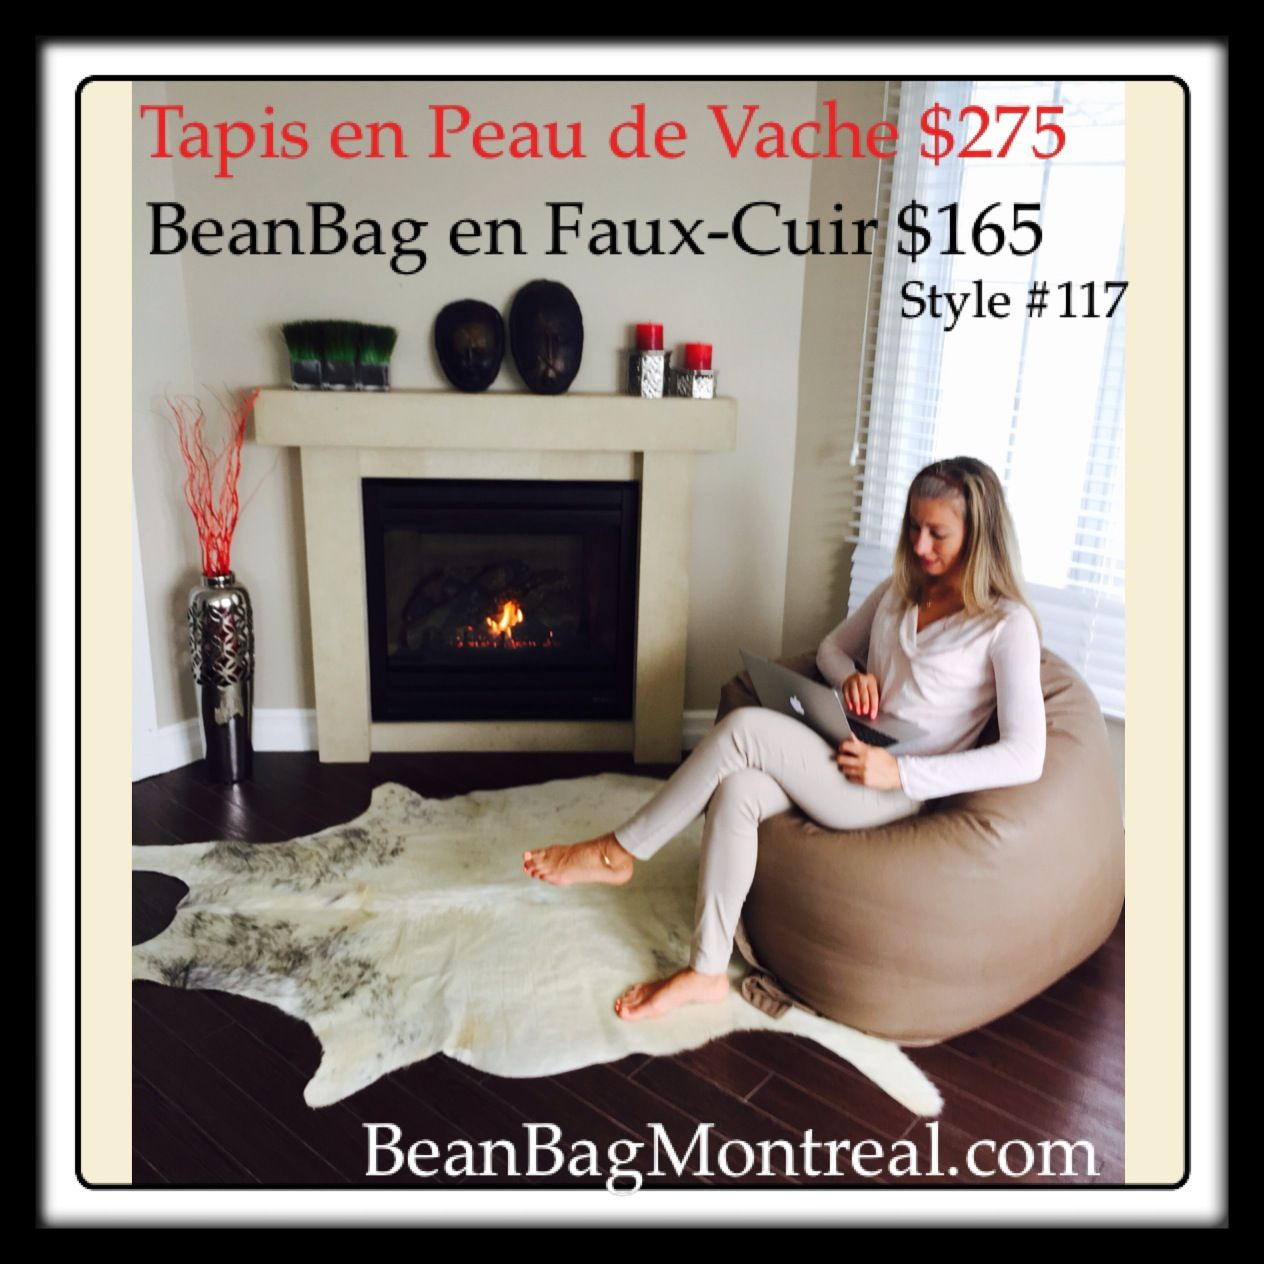 Pin By Beanbag Montreal On Tapis En Peau De Vache Et Mouton Cow Hide And Sheep Skin Toddler Bed Bed Home Decor